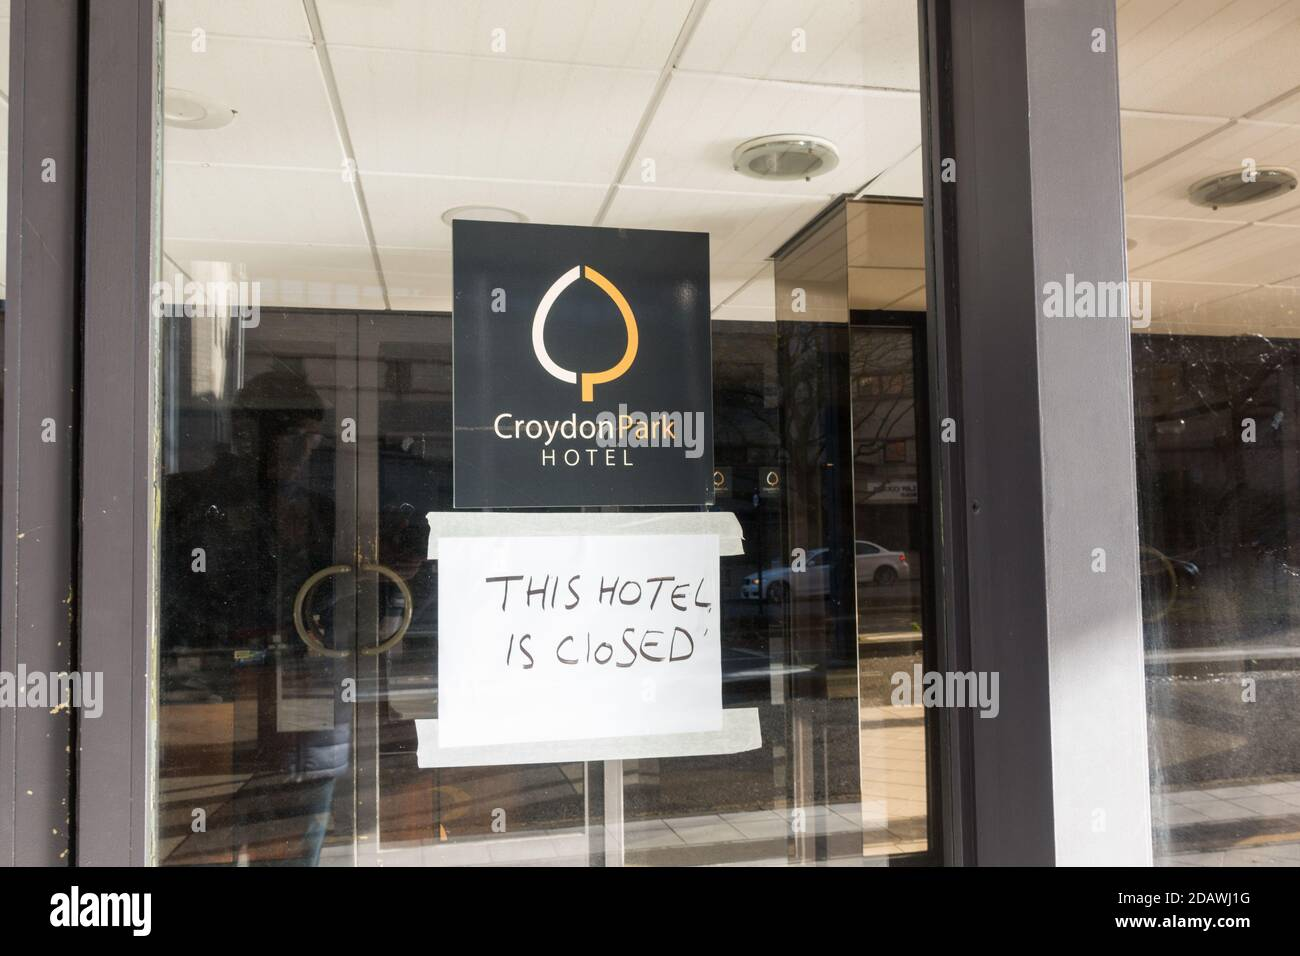 croydon-park-hotel-closed-in-2020-due-to-the-crisis-in-croydon-council-when-it-was-declared-bankrupt-2DAWJ1G.jpg